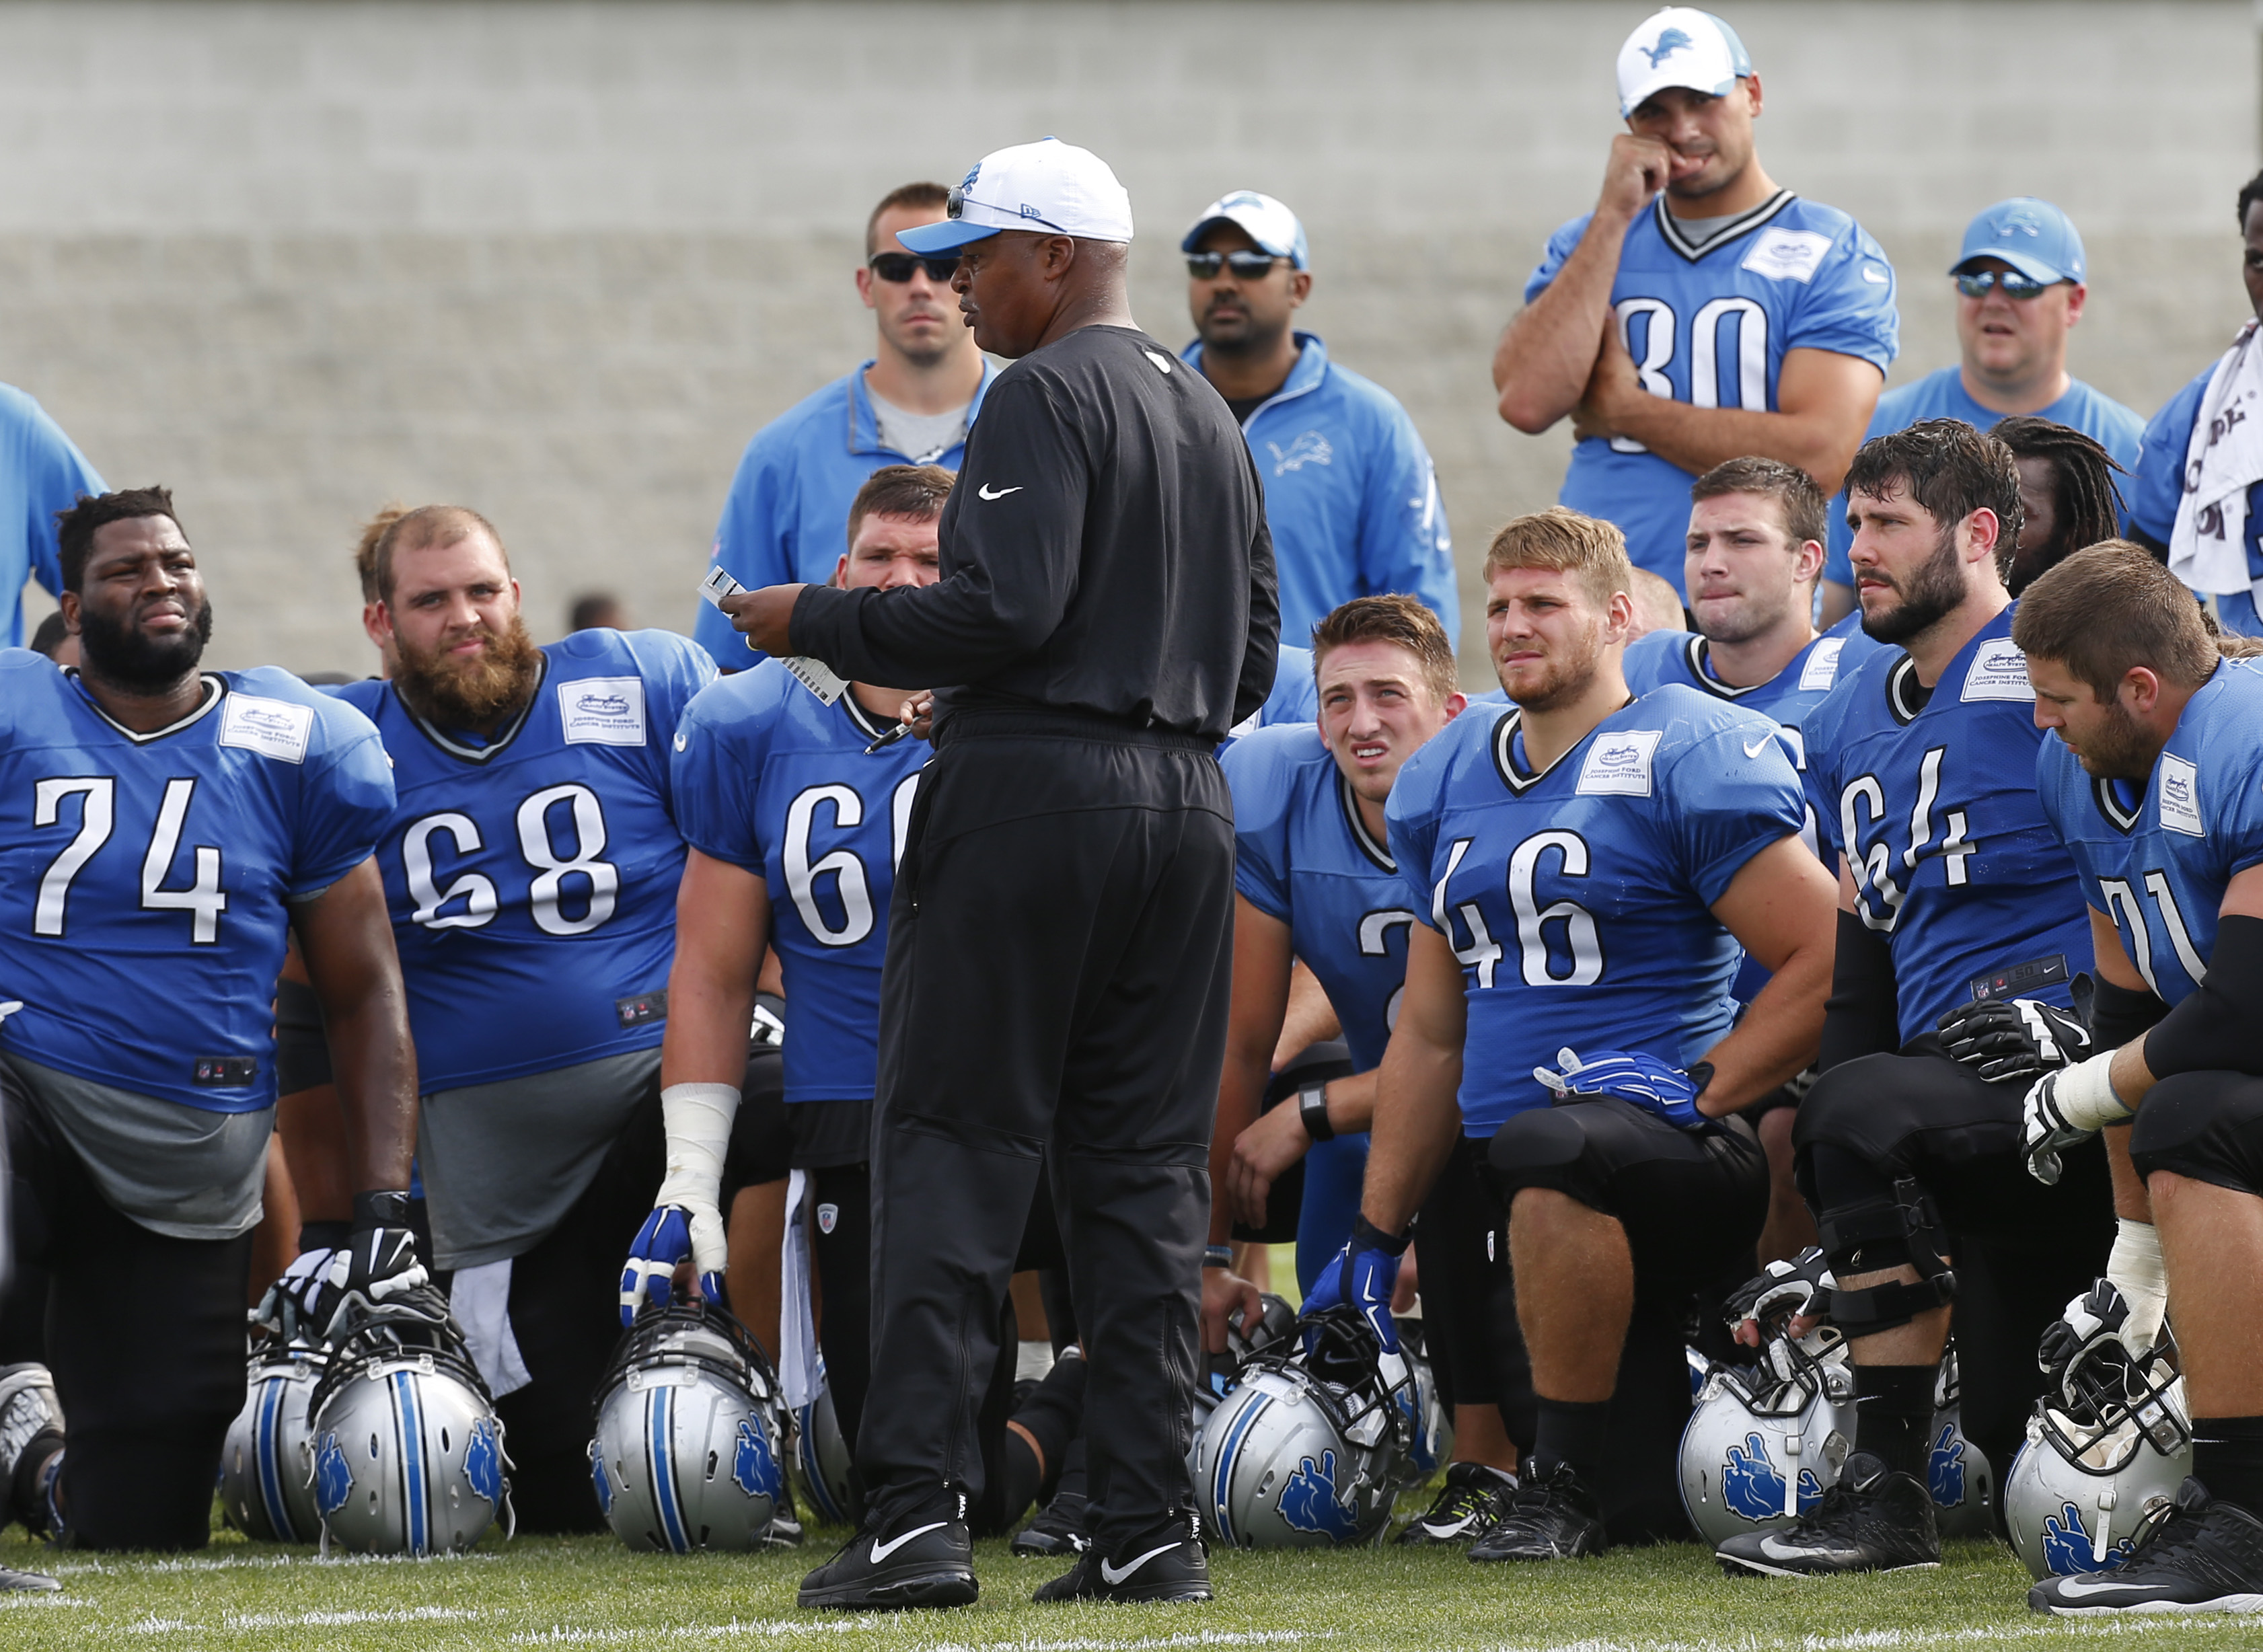 Detroit Lions head coach Jim Caldwell talks to the team after NFL football training camp in Allen Park, Mich., Friday, Aug. 7, 2015. (AP Photo/Paul Sancya)